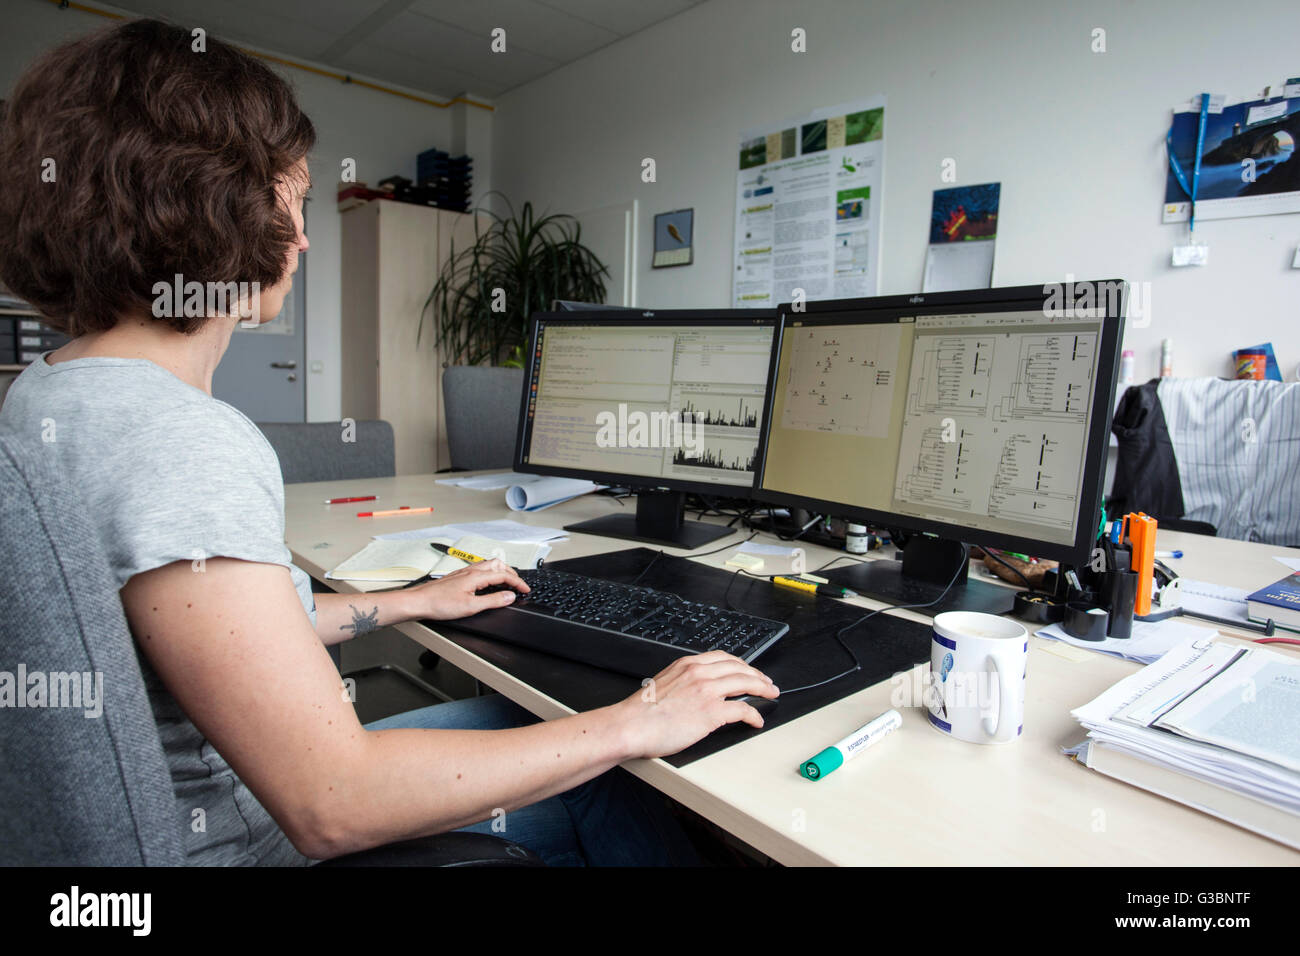 Scientist at the computer - Stock Image